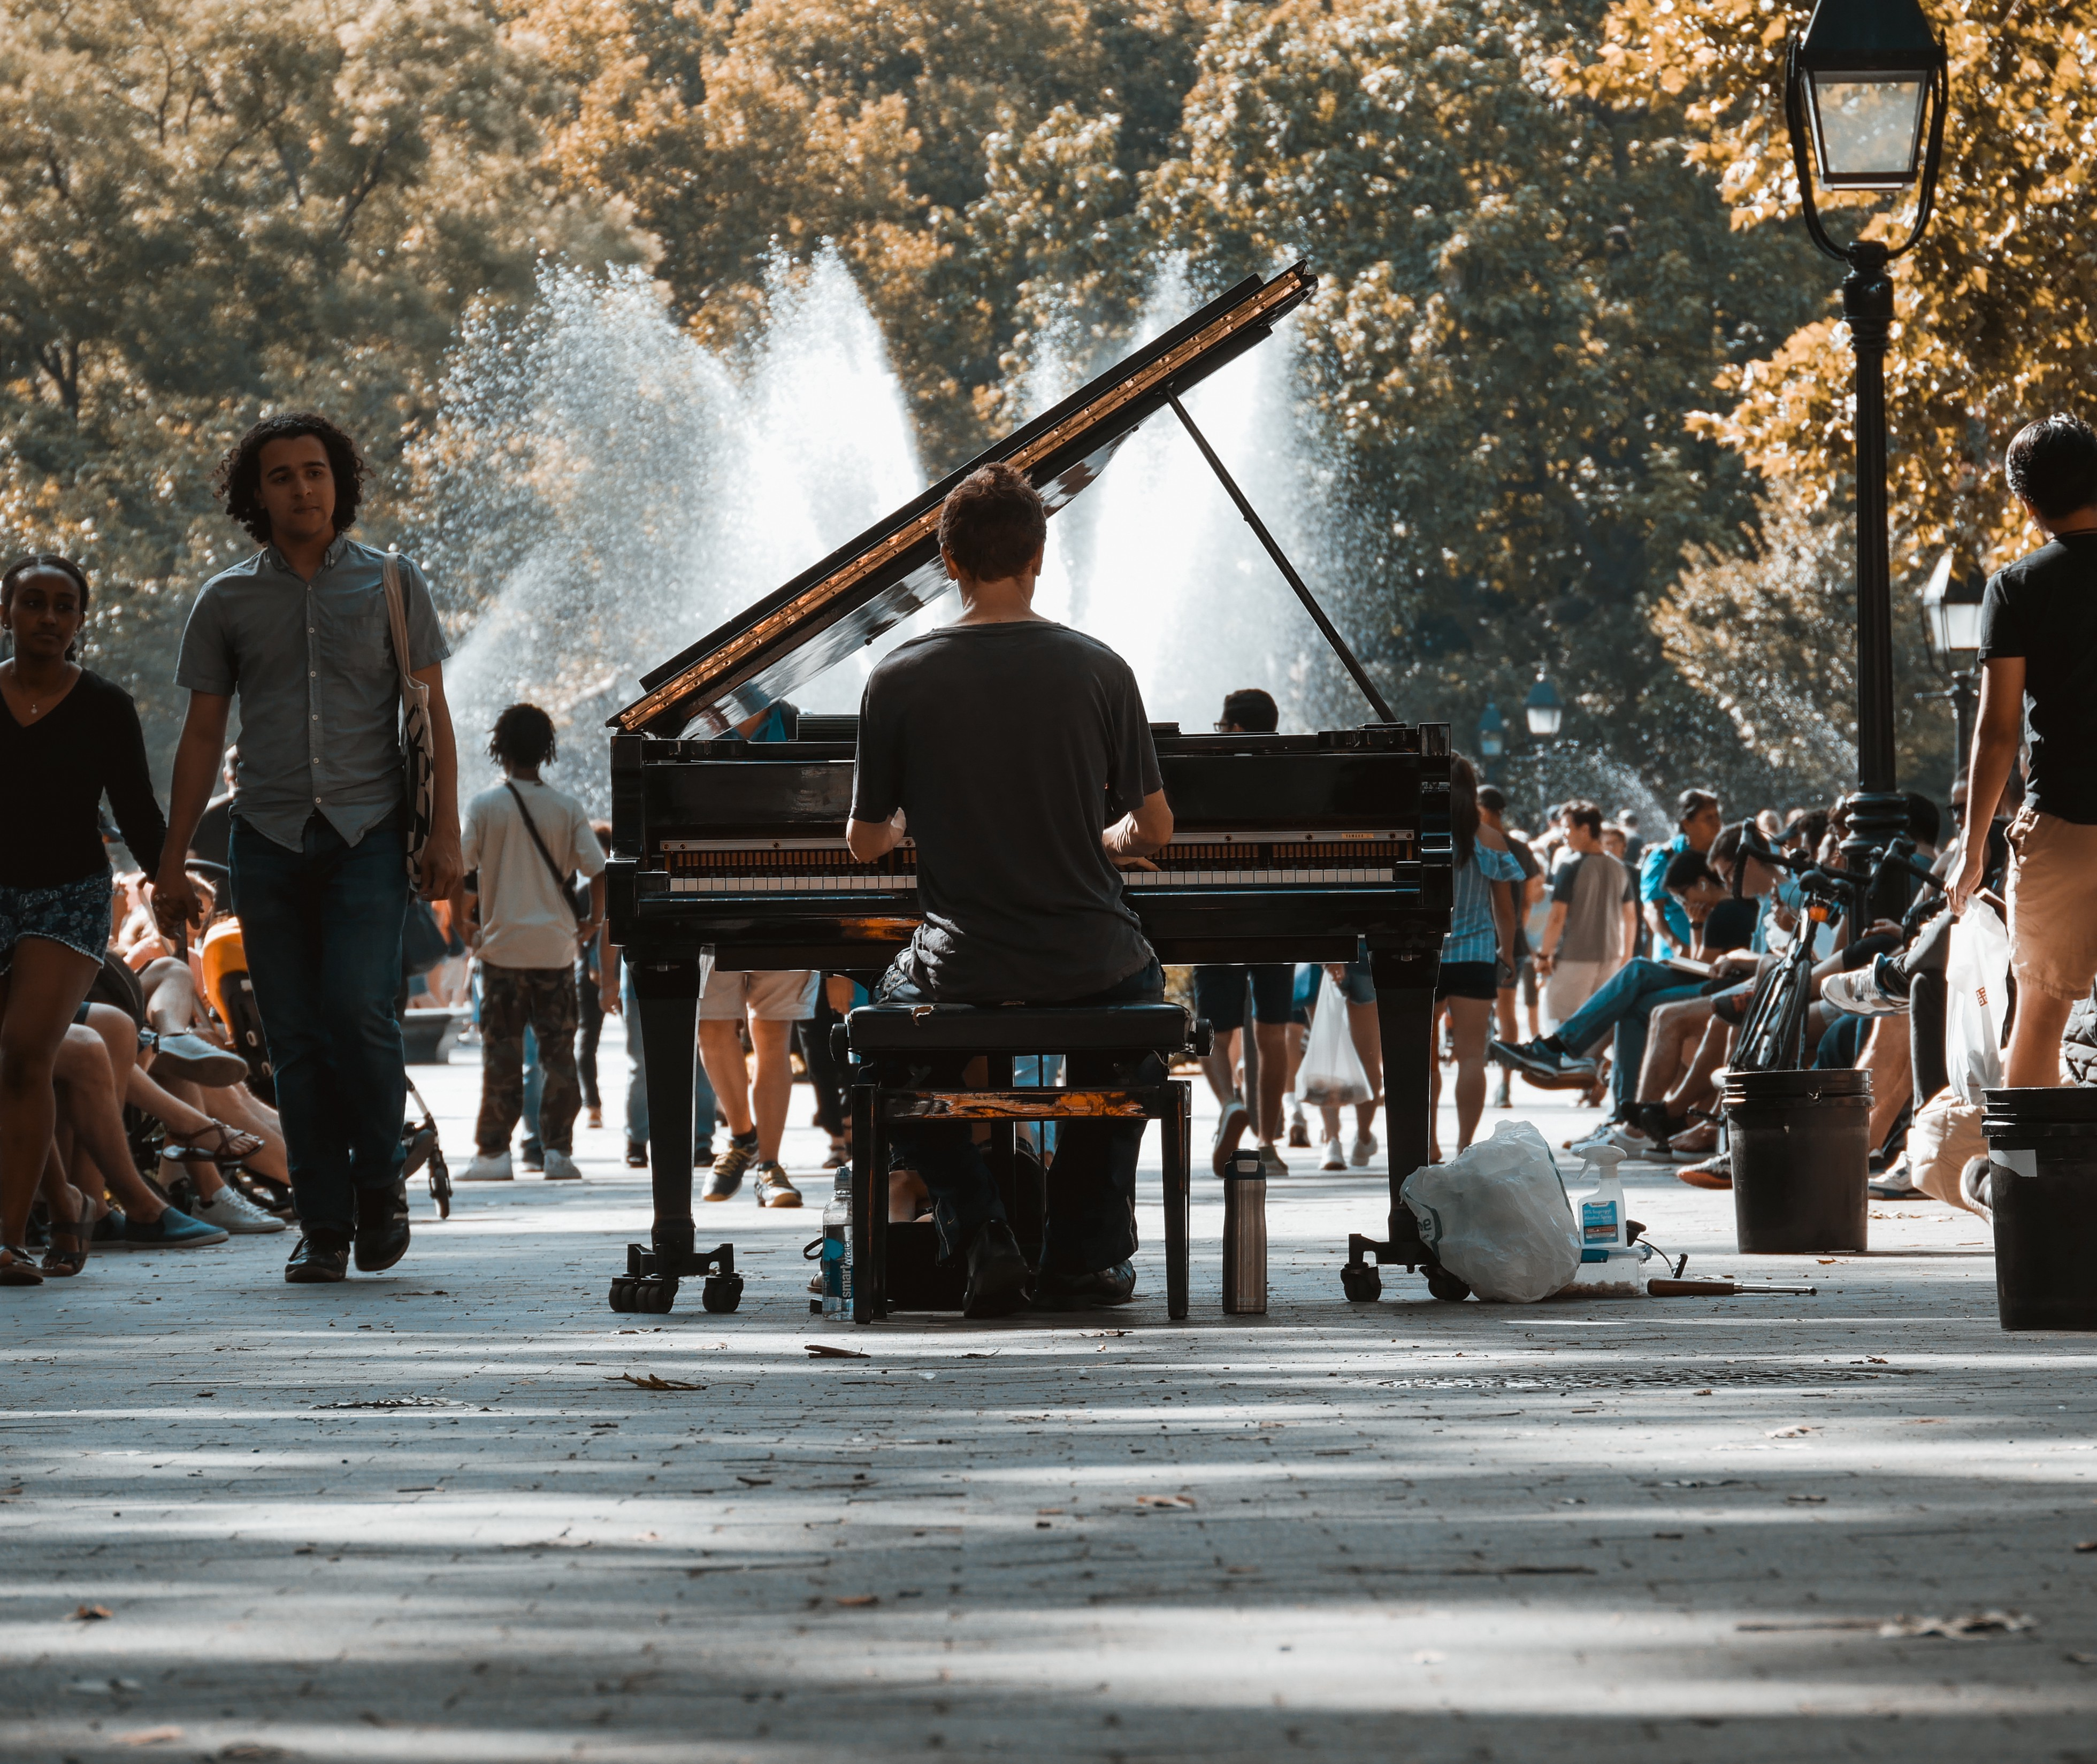 Rear view of a man playing piano in an outdoor park.